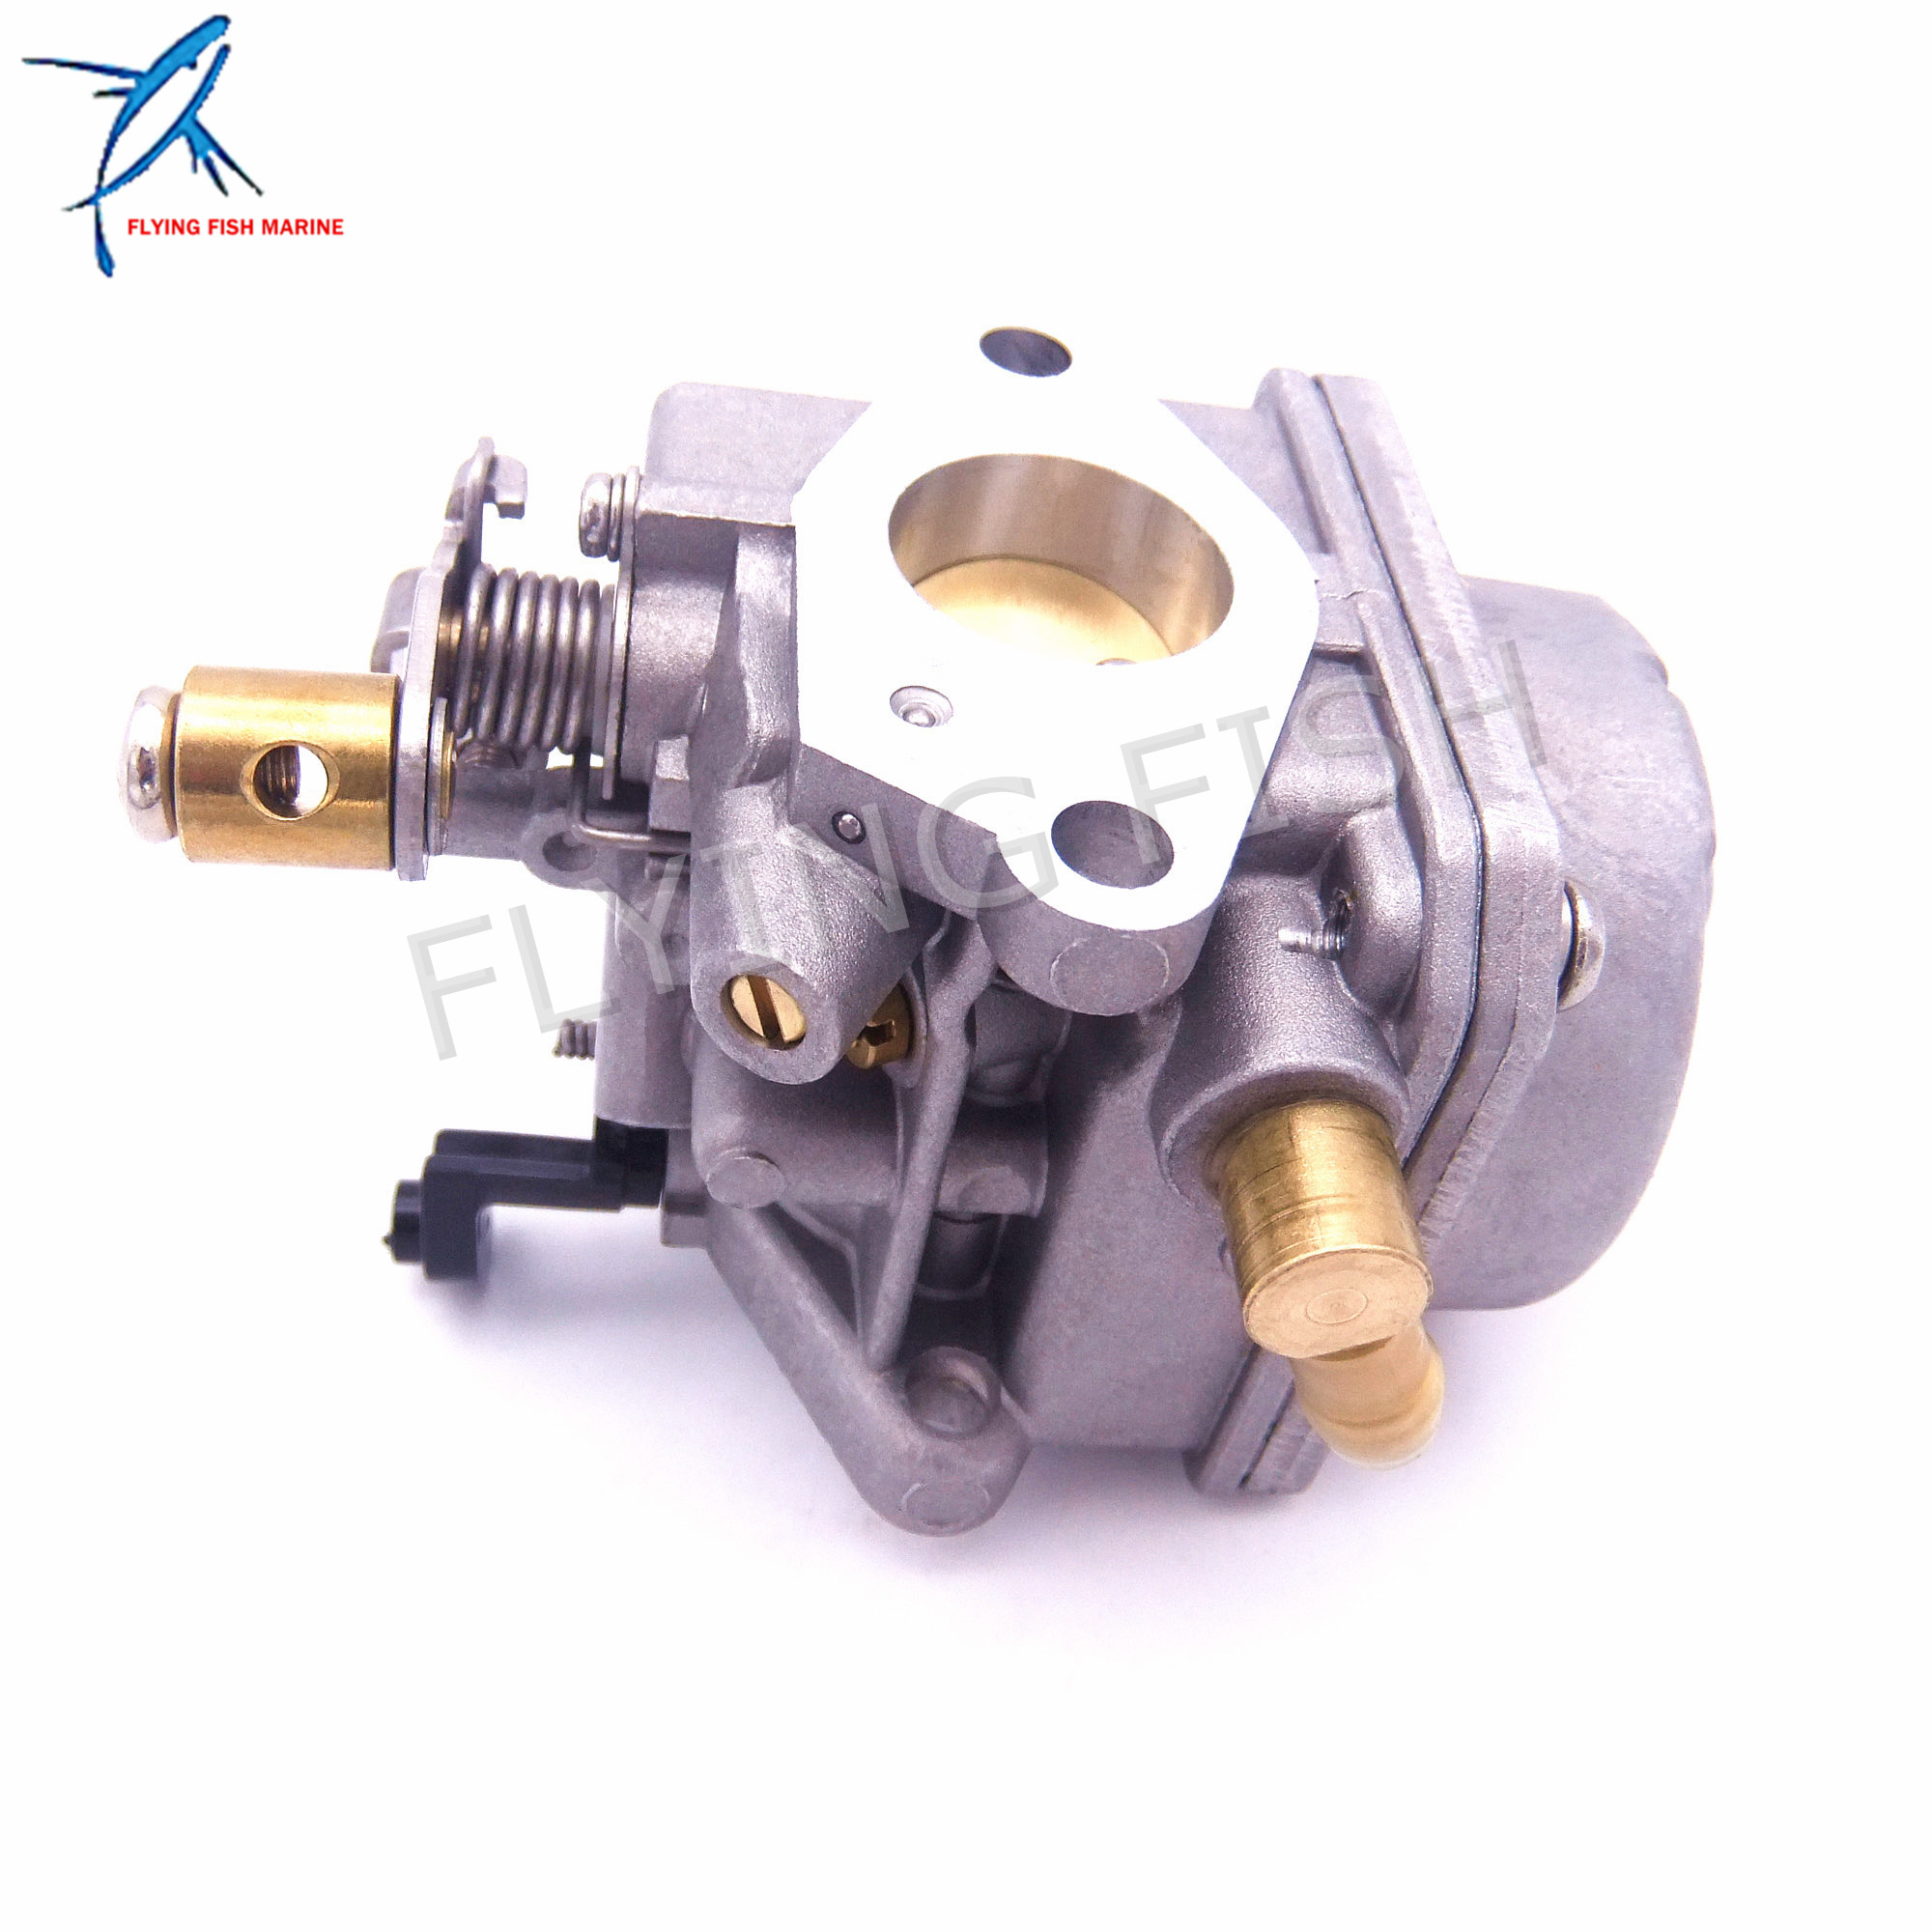 Outboard Engine Carburetor Assy 6BX 14301 10 6BX 14301 11 6BX 14301 00 for Yamaha 4